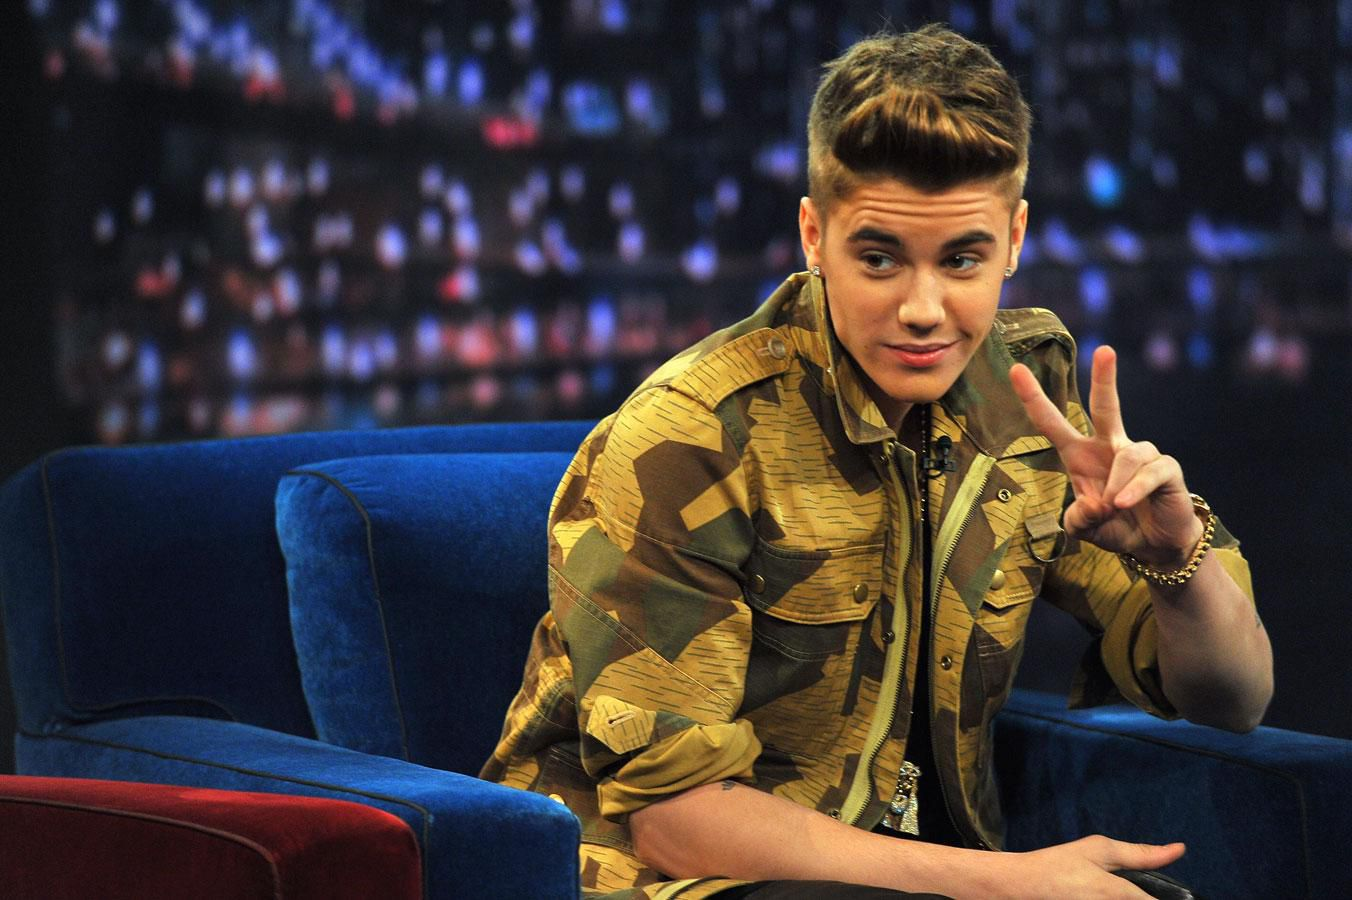 Justin Bieber Profile and Biography